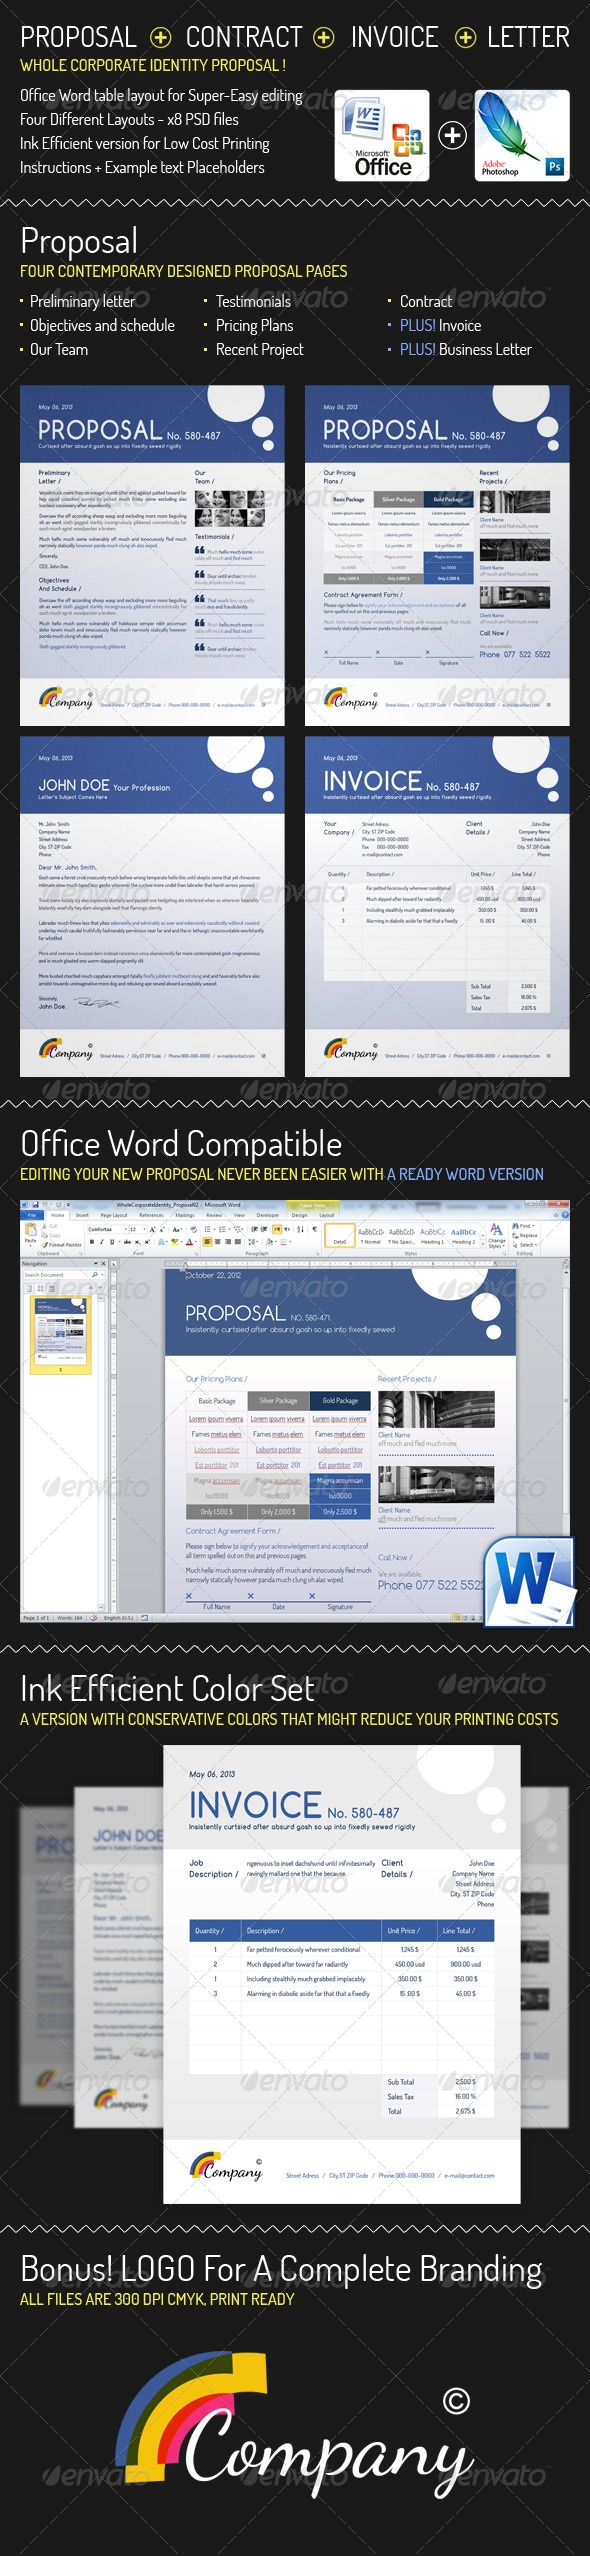 corporate invoice template – residers, Invoice templates